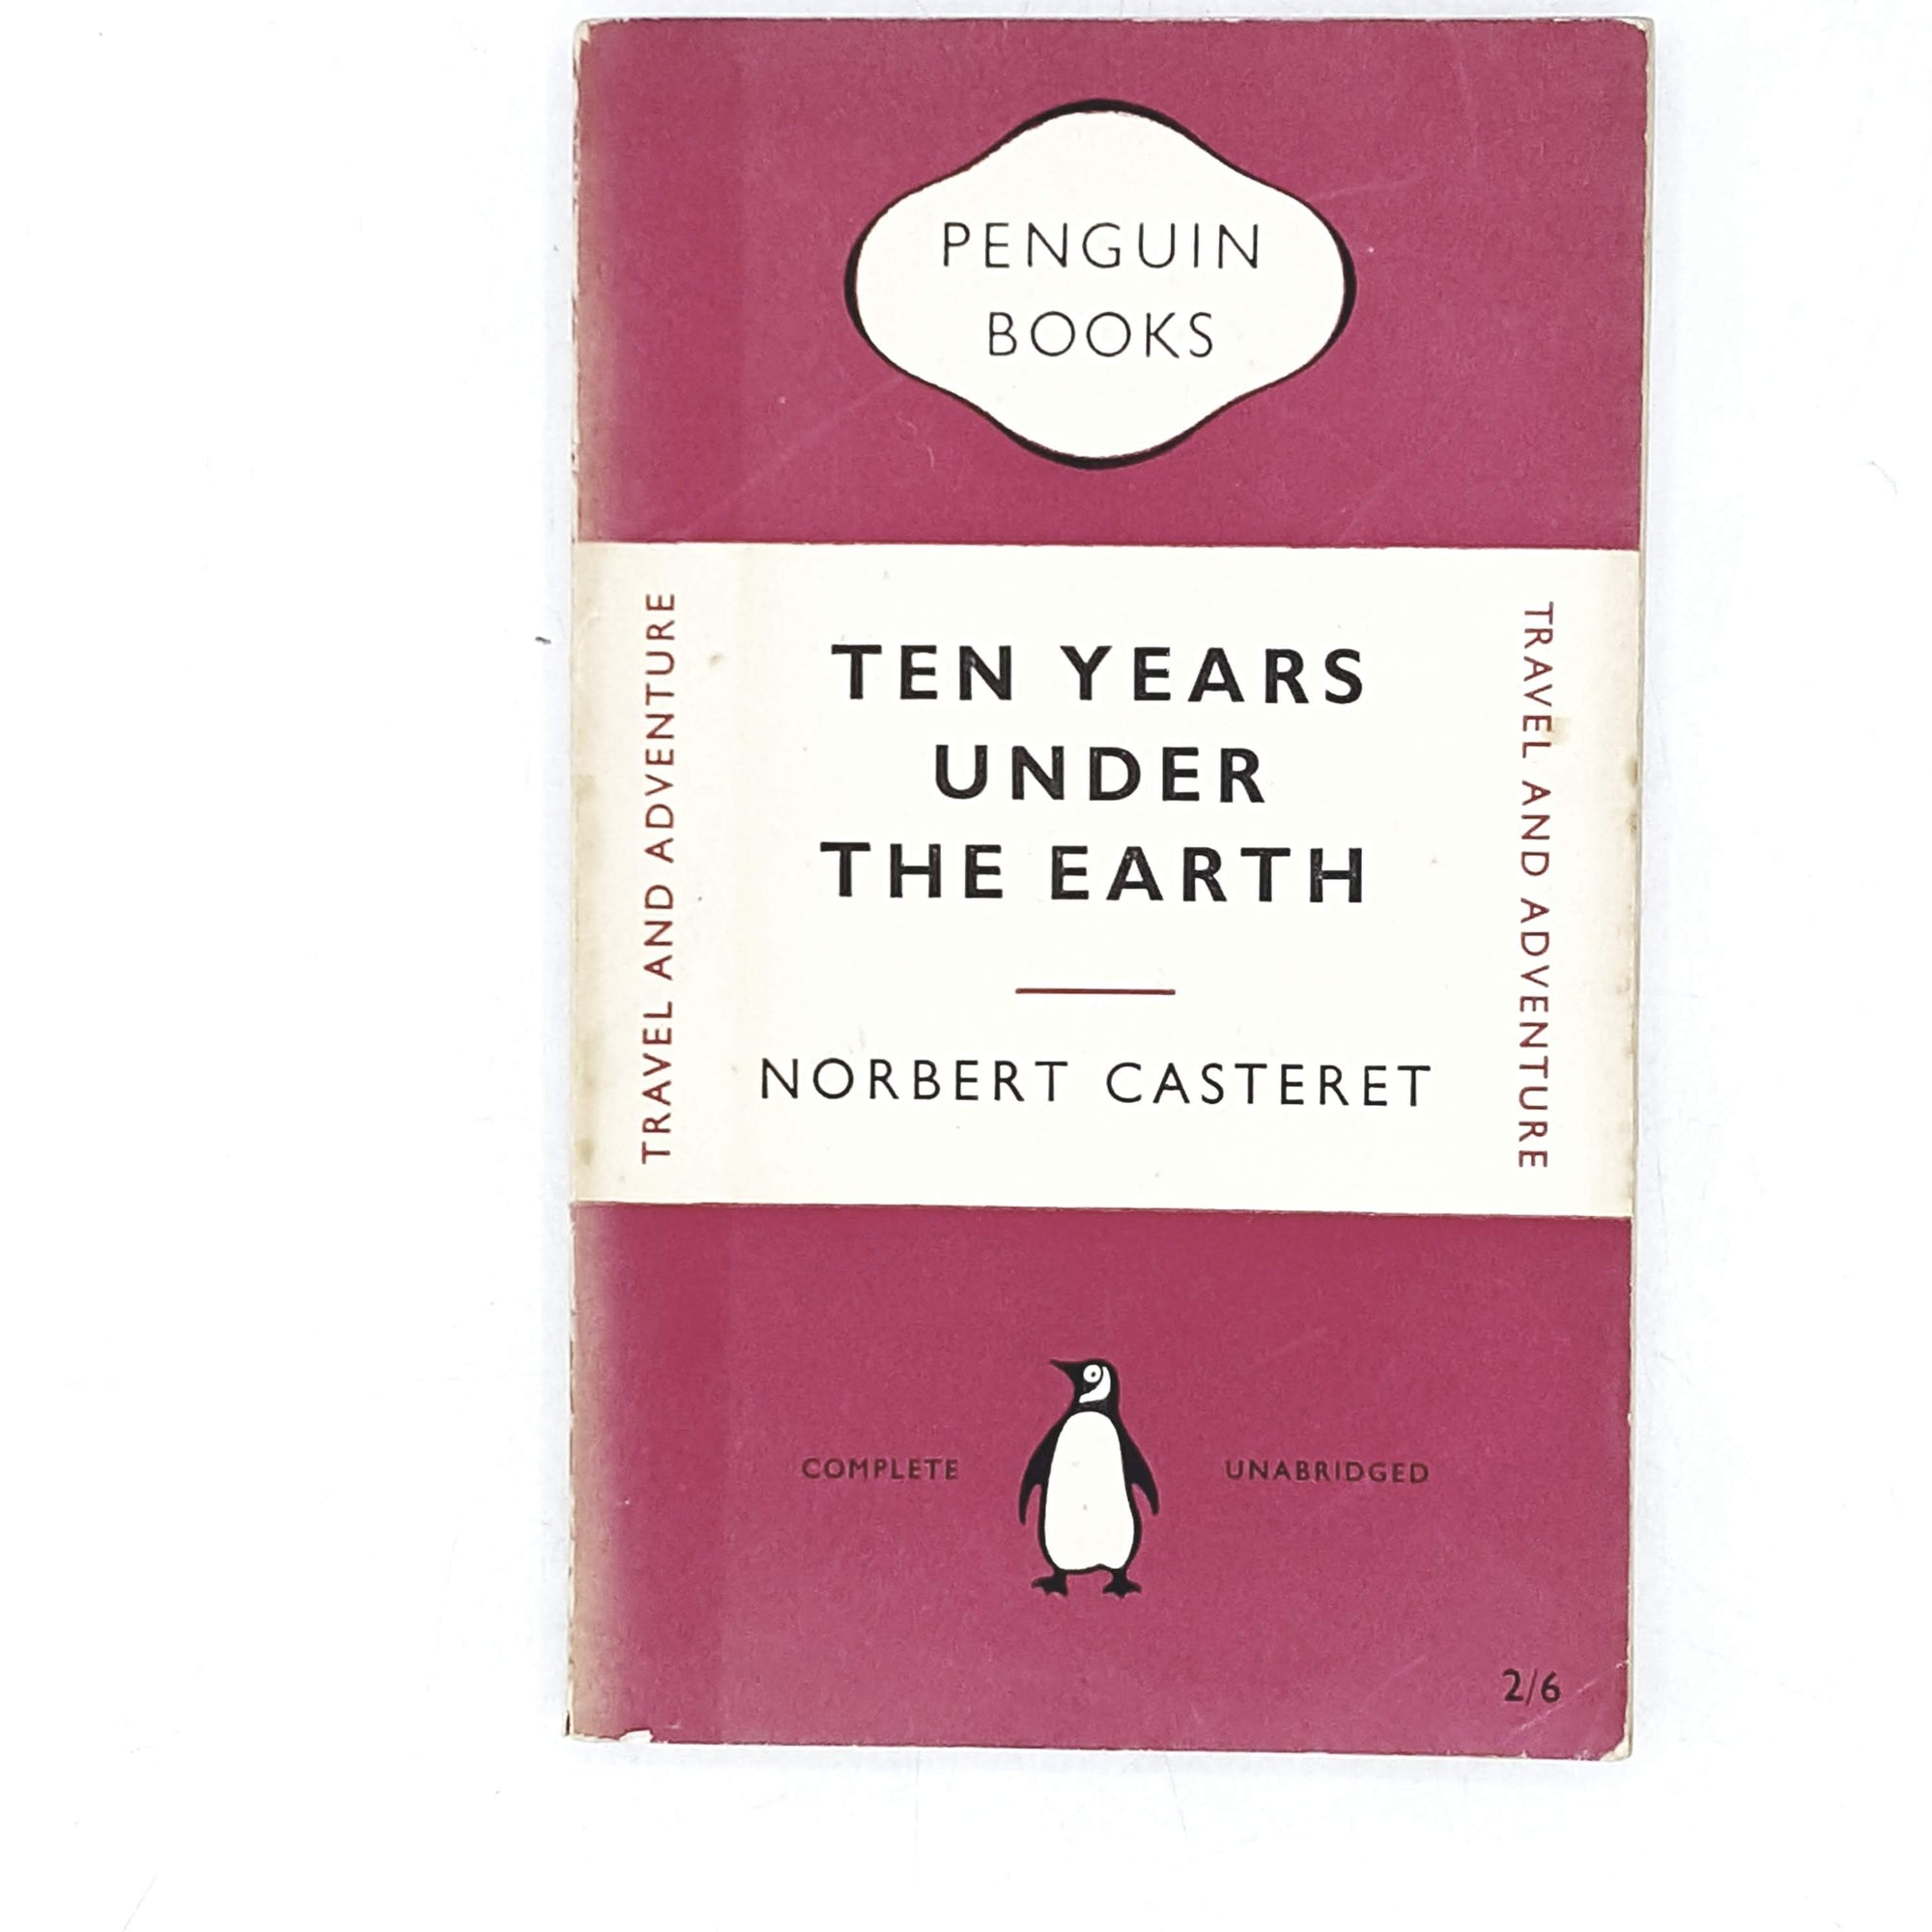 vintage-penguin-ten-years-under-the-earth-by-norbert-casteret-1952-pink-antique-books-country-house-library